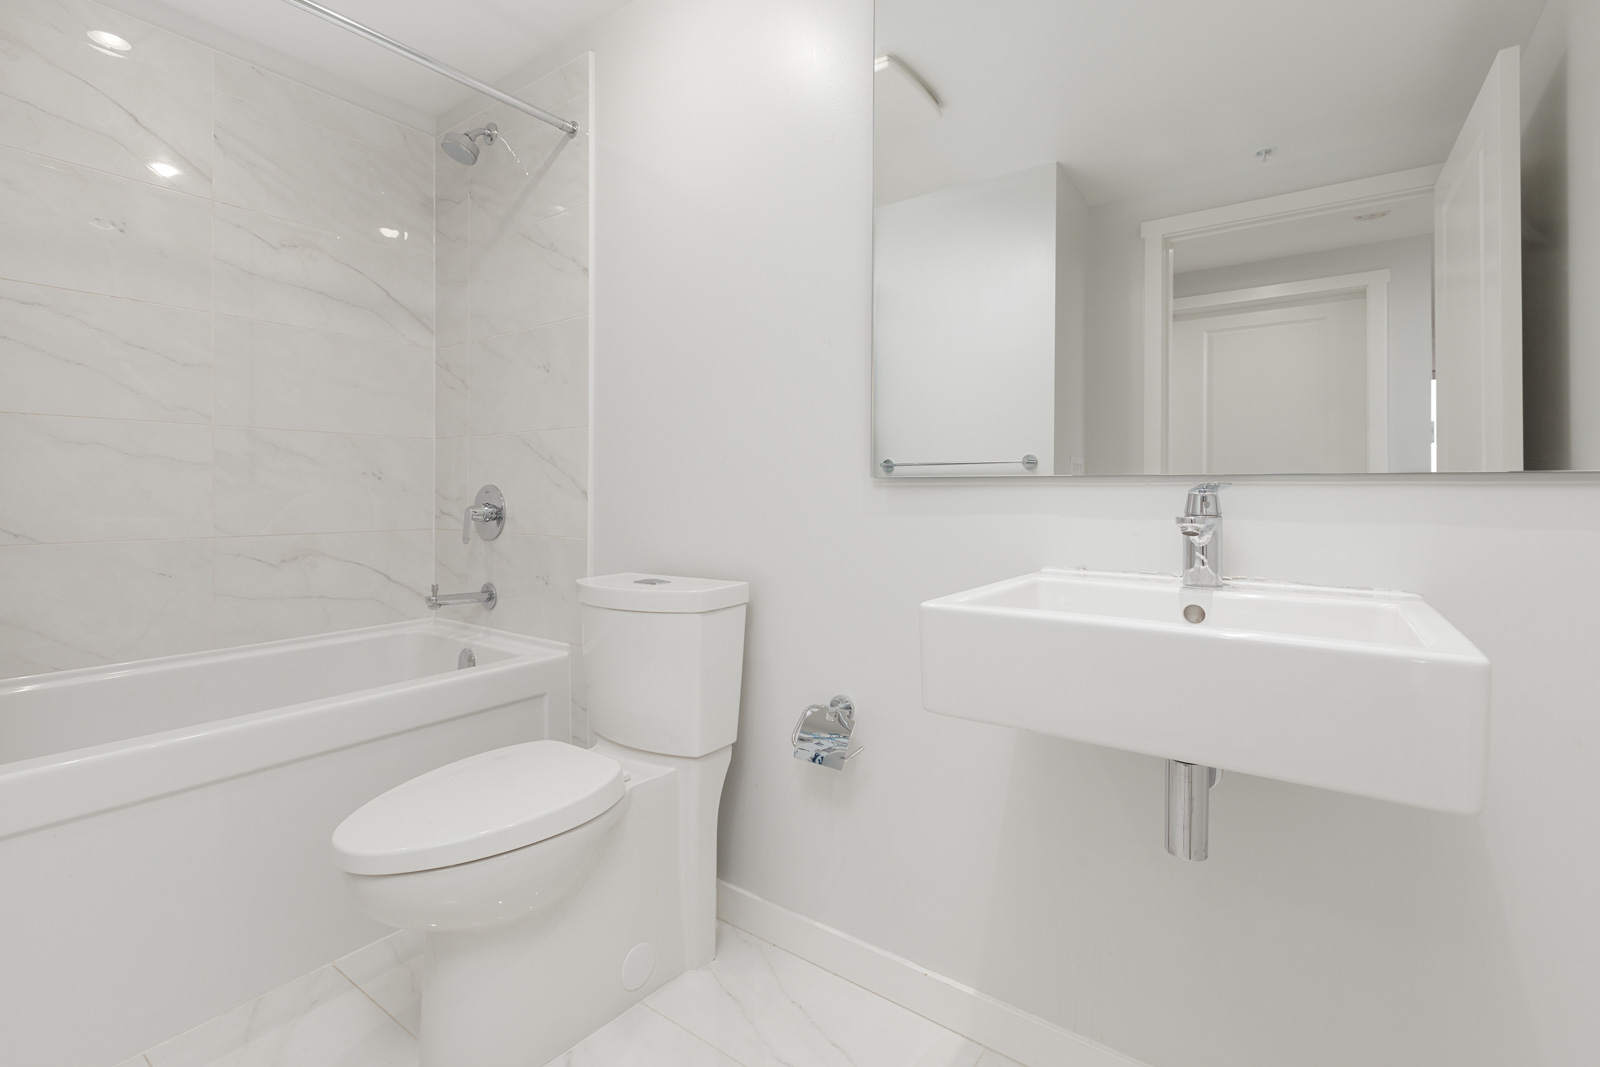 bathroom with toilet, sink, and tub